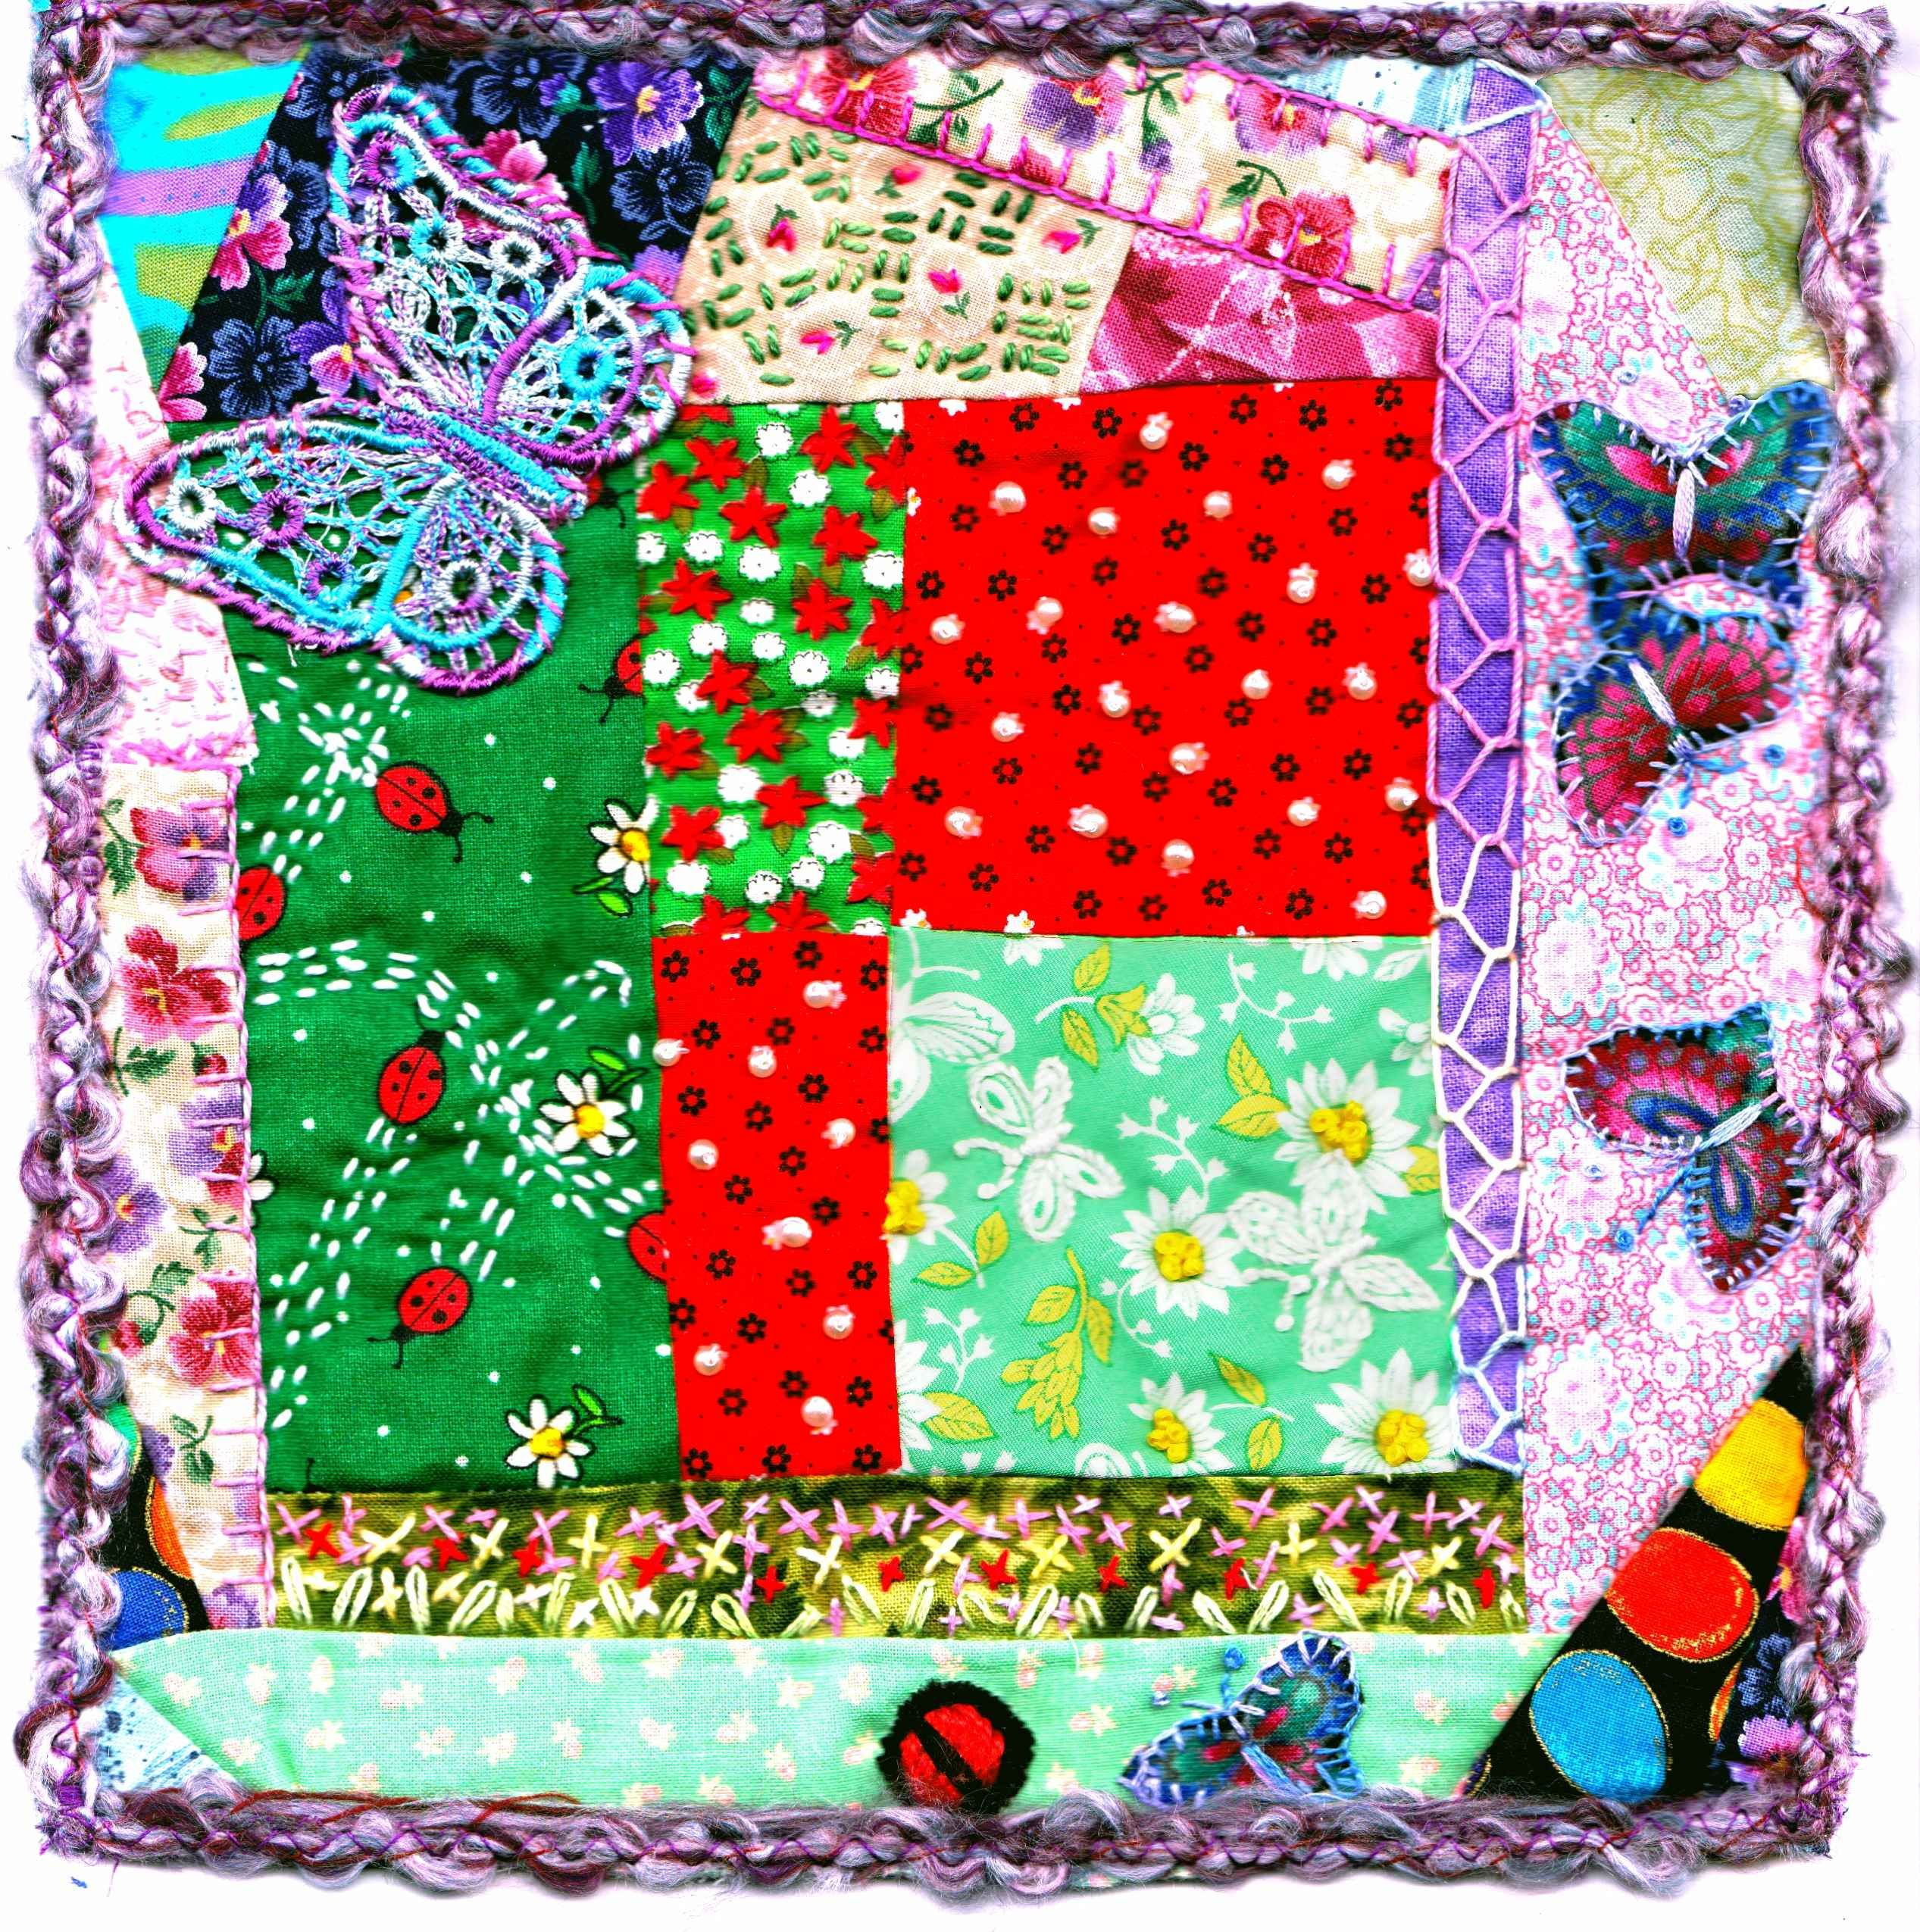 Embellished quilt block by gail rodgers gailus sewing projects